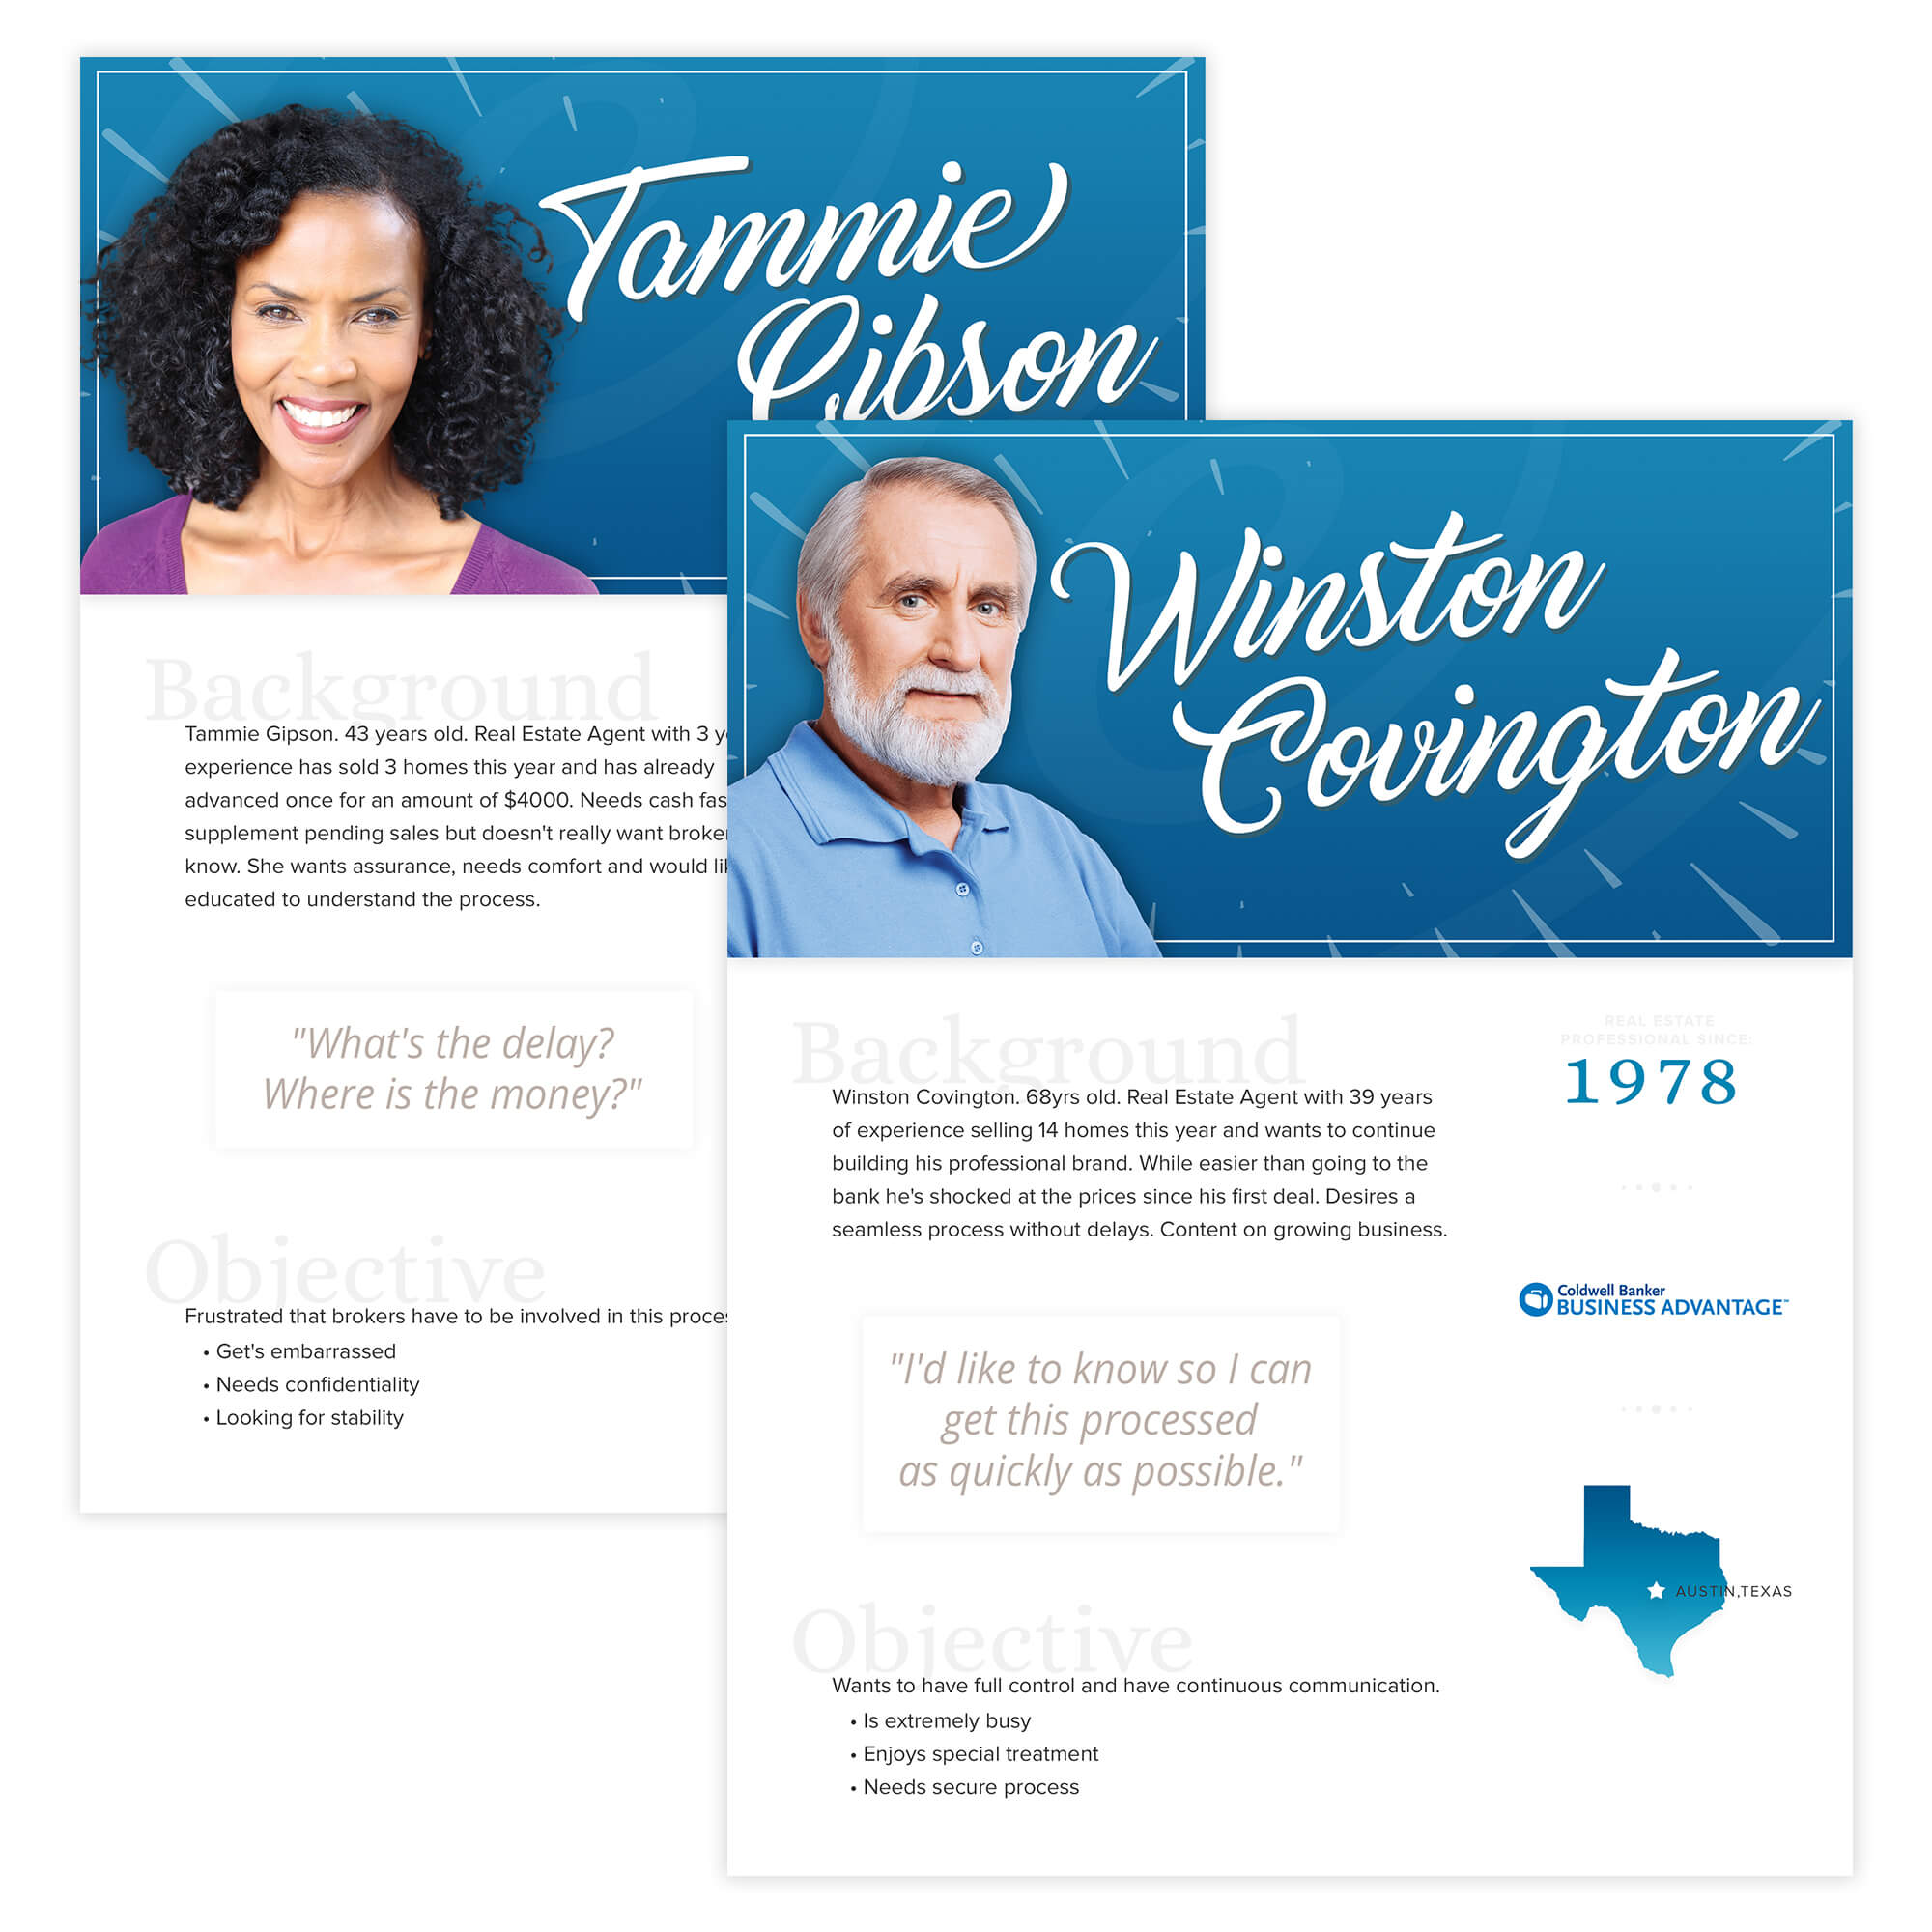 Two user profiles to understand the needs of Tami and Winston, users who would benefit from this feature.